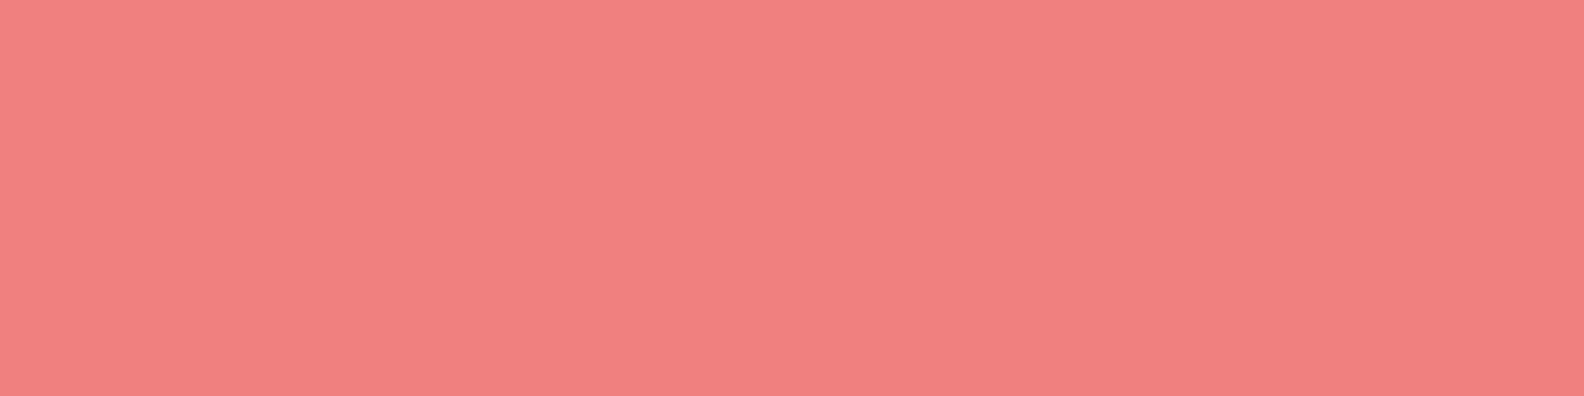 1584x396 Light Coral Solid Color Background